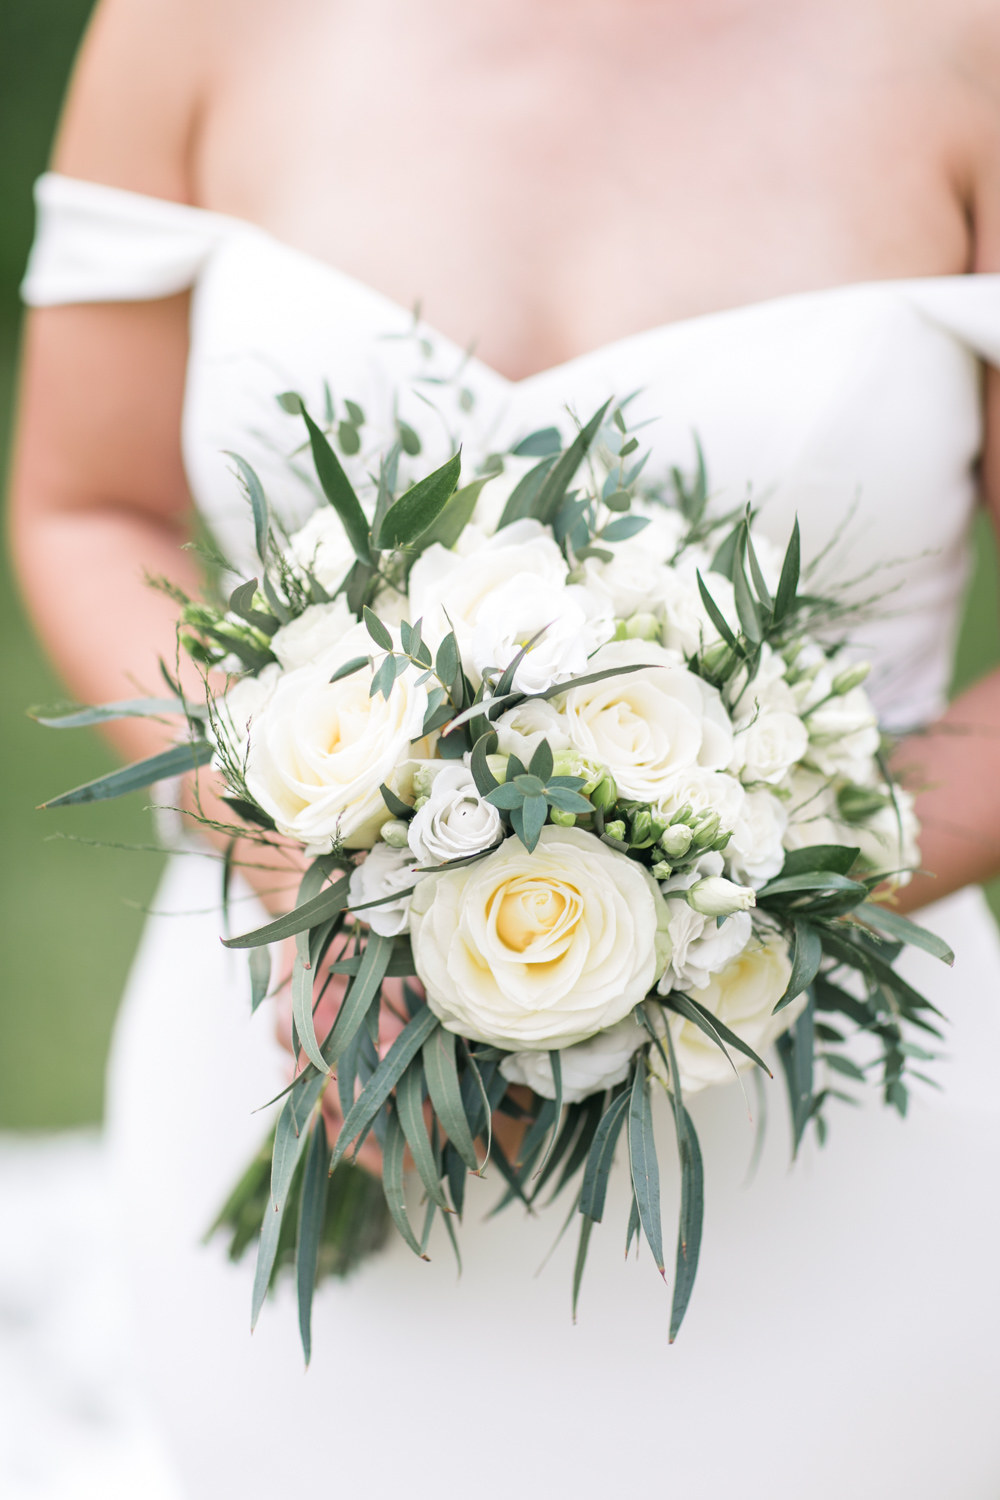 a close up of bride holding a bouquet of flowers with her off shoulder white wedding dress in the background